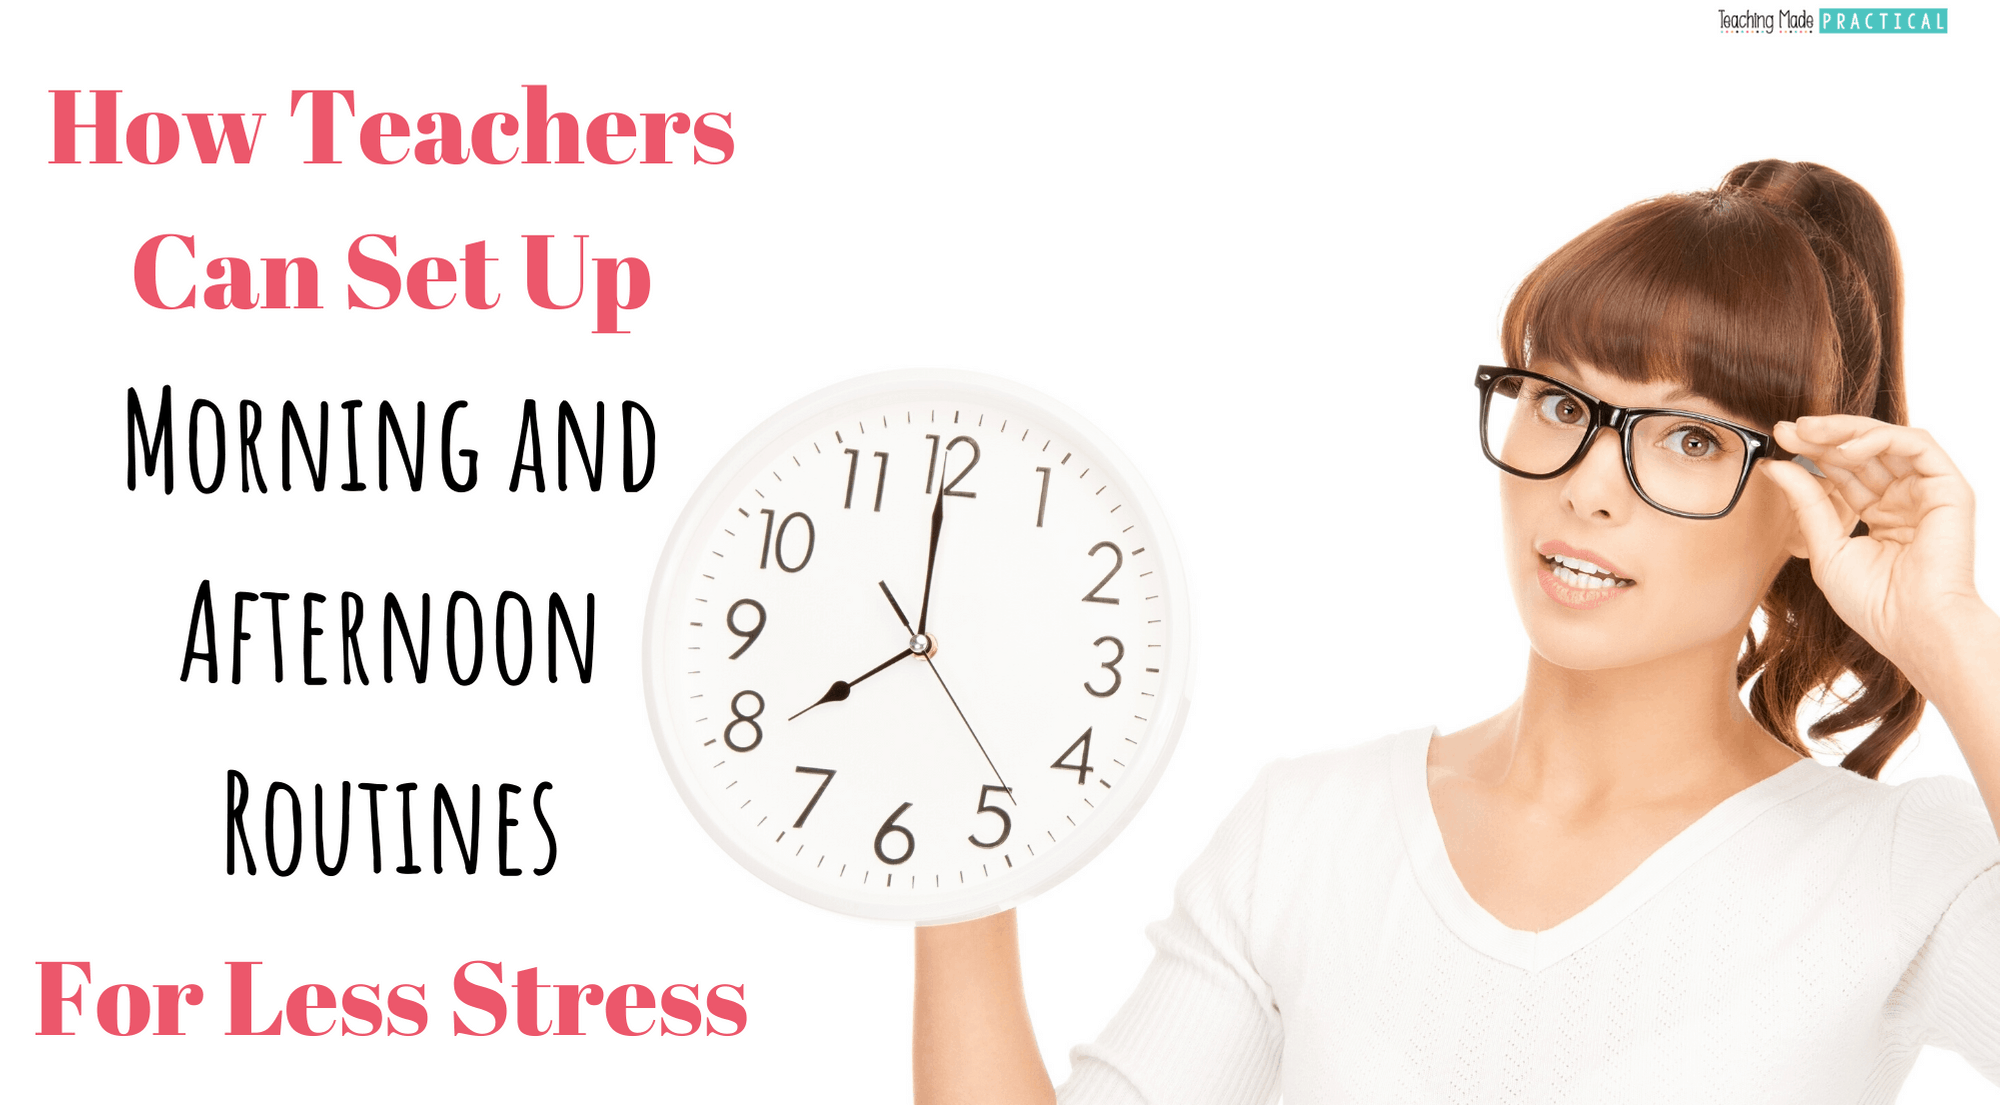 Setting up morning and afternoon routines (for the teacher) in upper elementary classrooms - 3rd, 4th, and 5th grade